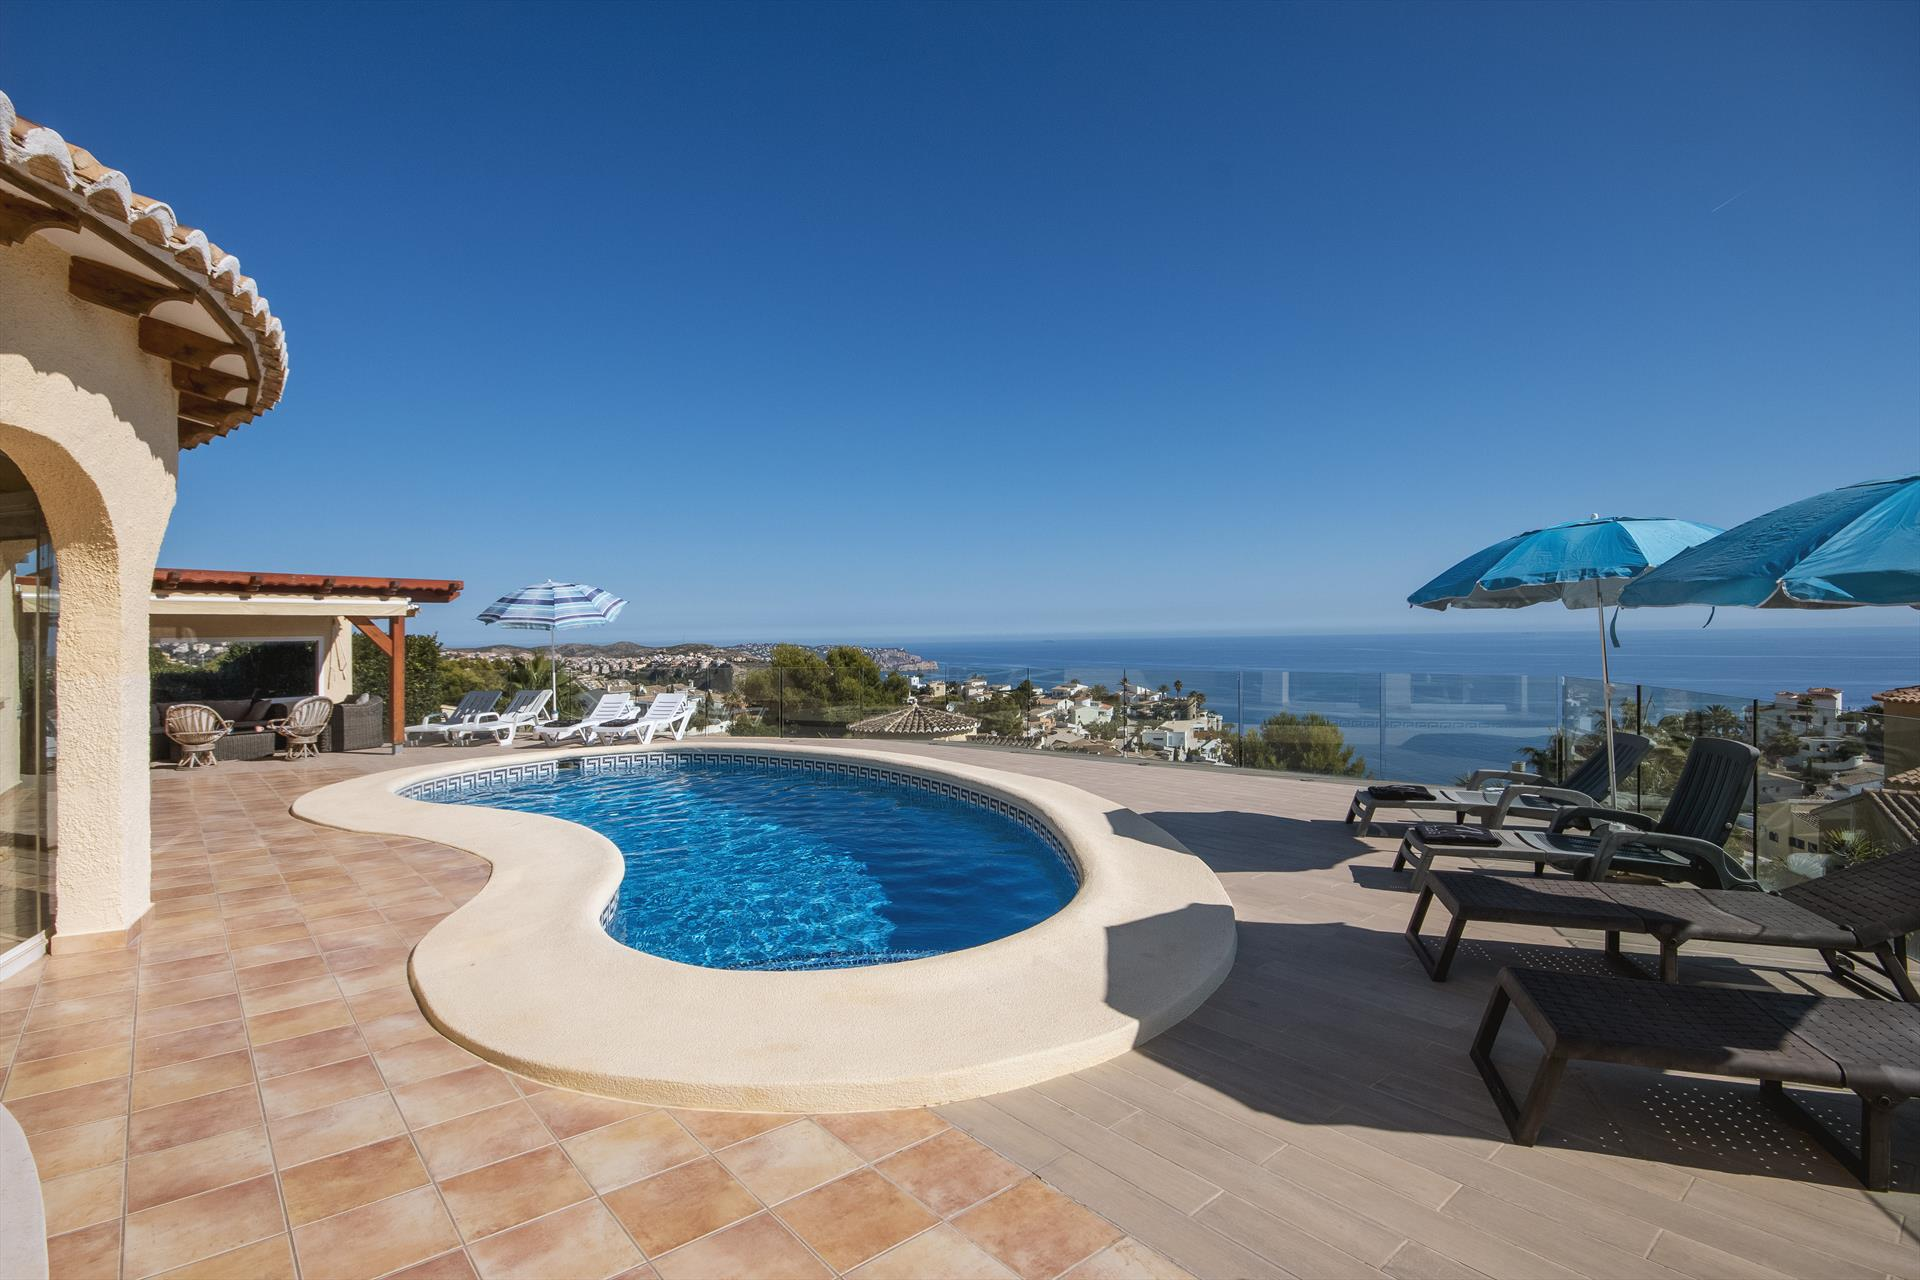 Carrevegas, Large and nice villa  with private pool in Benitachell, on the Costa Blanca, Spain for 8 persons.....